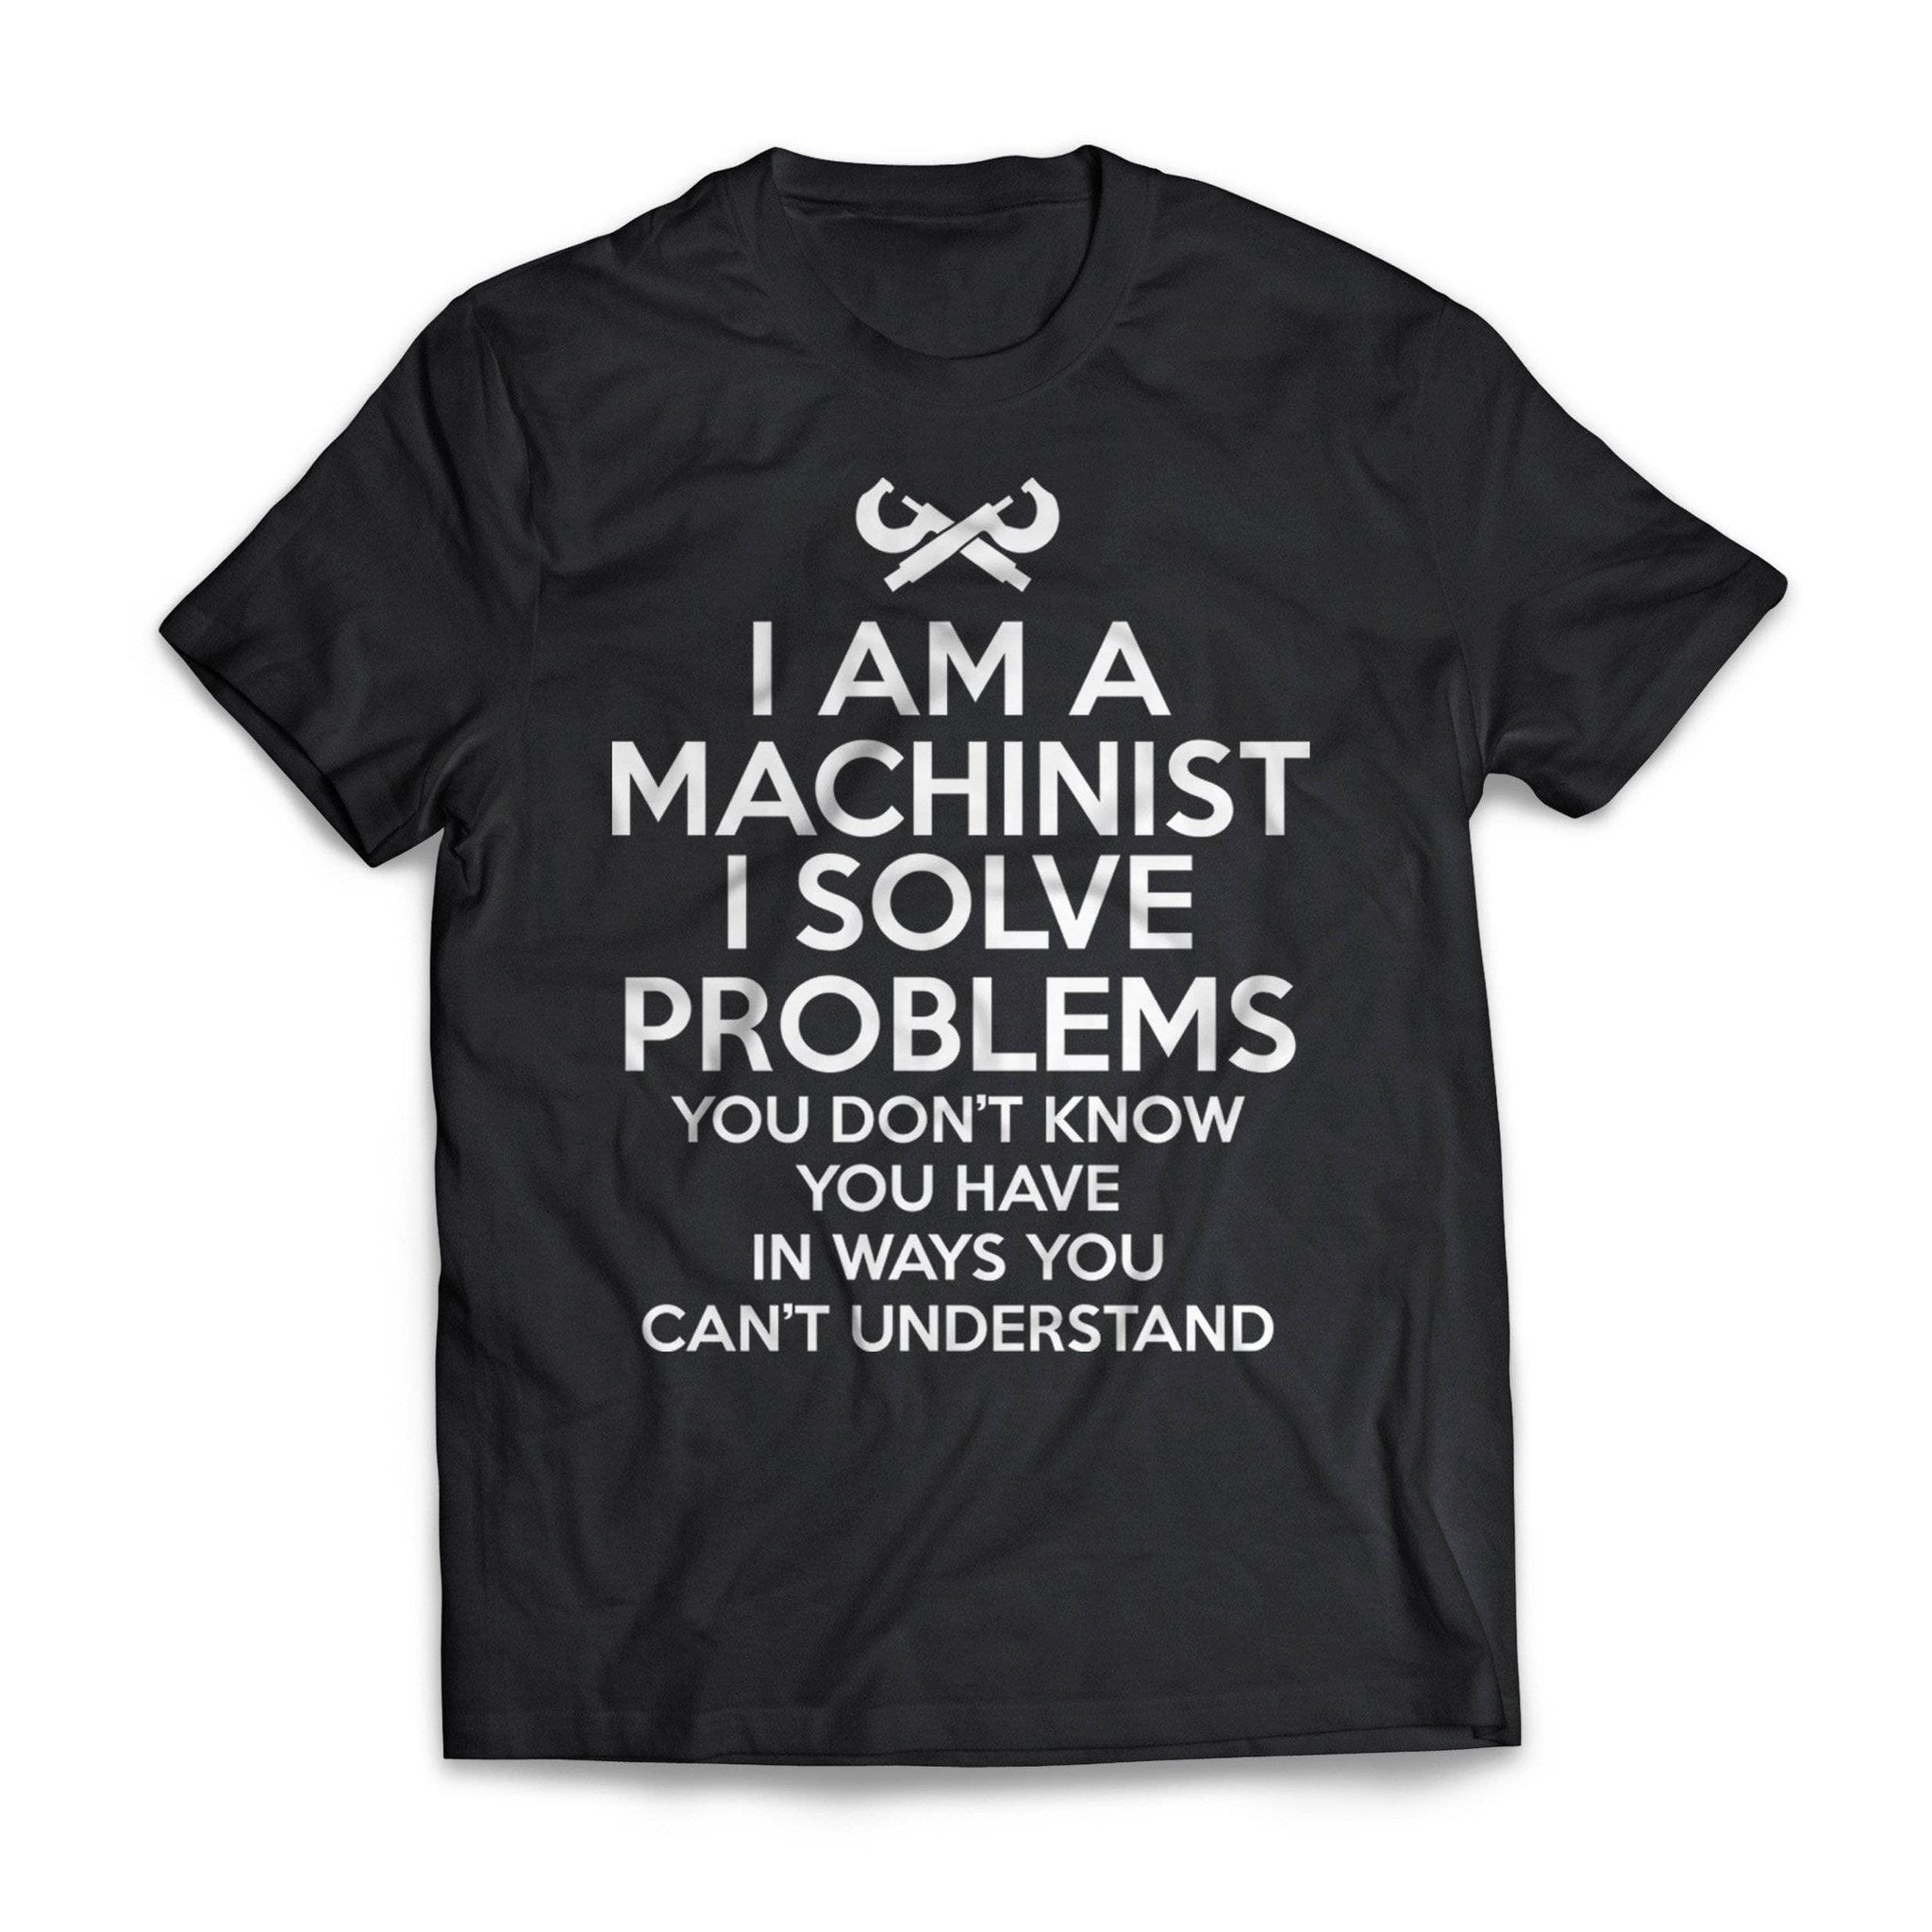 I Solve Problems Machinist